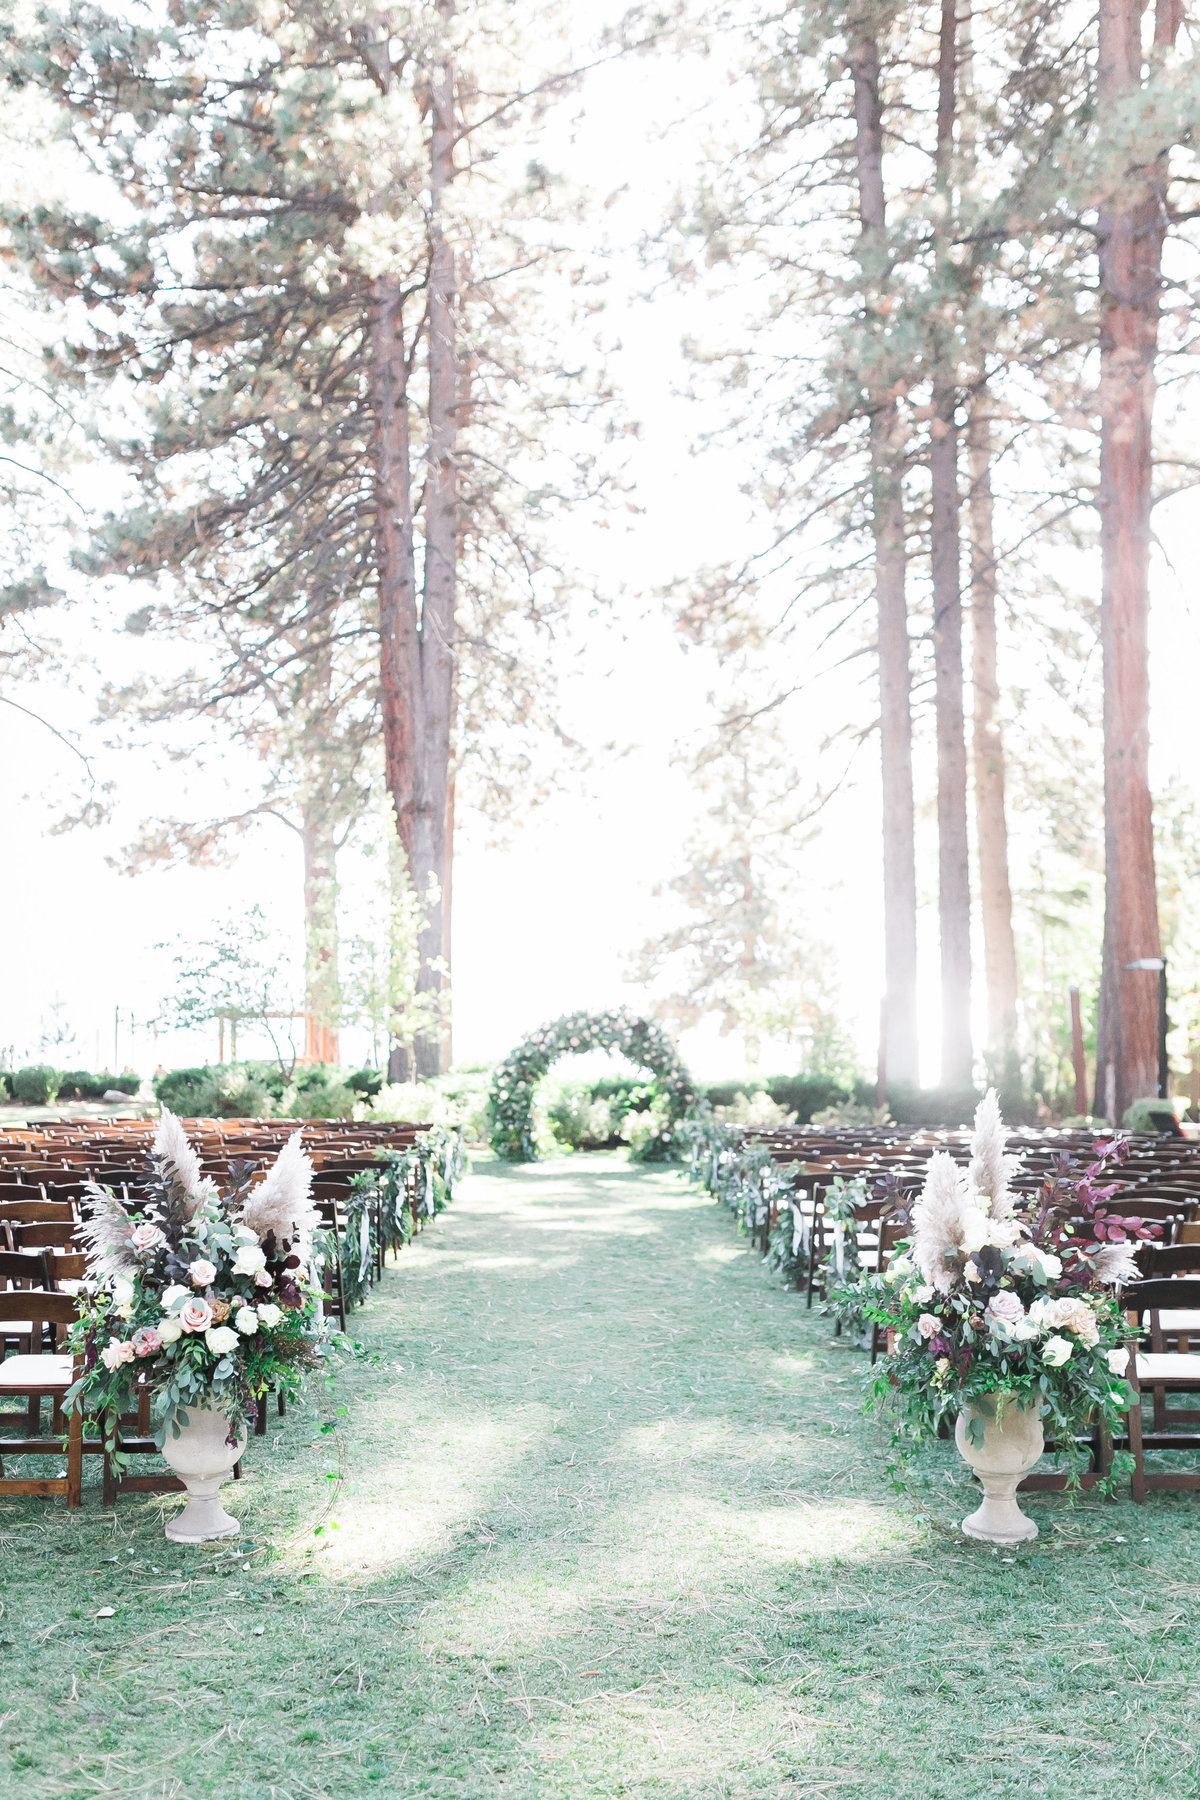 lakeside  wedding ceremony and arch at Hyatt Regency Lake Tahoe